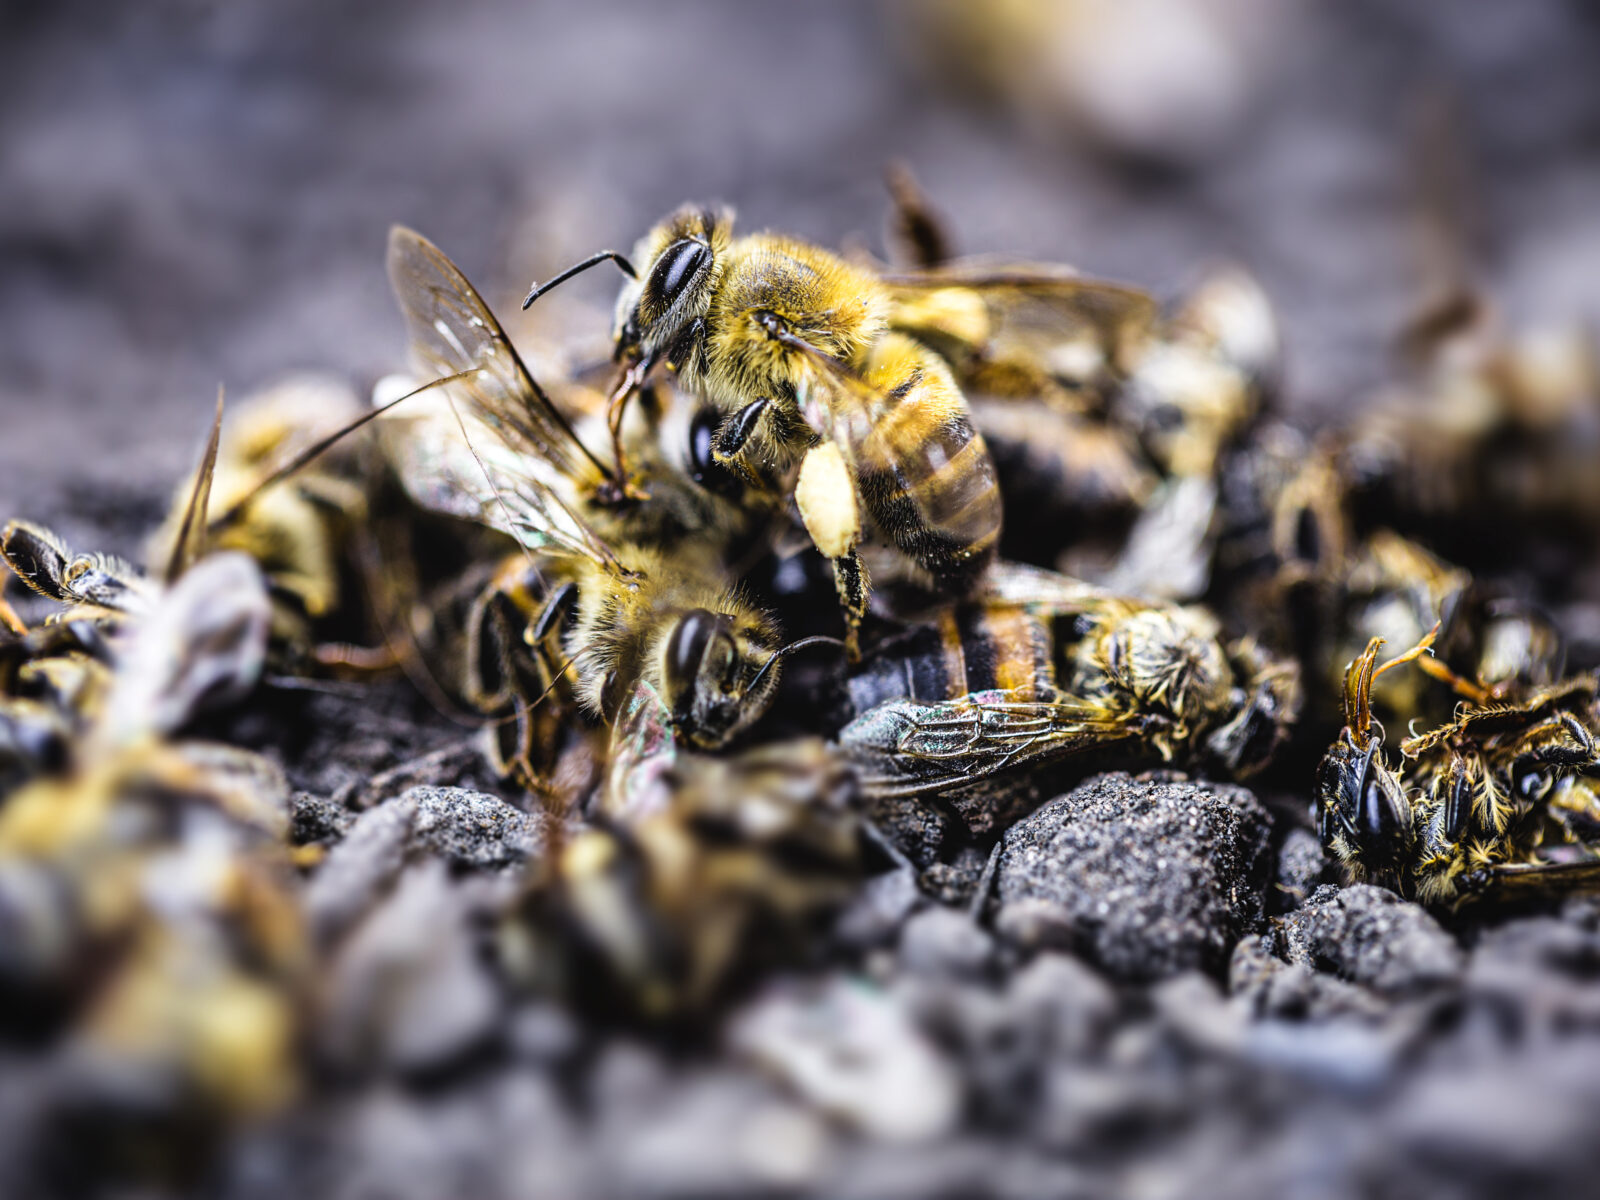 Bi, bidöd, bekämpningsmedel, förbjudna, Brasilien, critically, bio politics, extinction, collapse, bee macro, pesticide spraying, environmental pollution, die, colony collapse disorder, bees, extermination, decline, nosema, diseases, toxic, insecticides, modified, pesticides, colony, chemically, close, plagued, swarm, parasite, ecology, beekeeping, wildlife, closeup, macro, mass extinction, dying bees, dead bee, ecological problem, poison, environmental risk